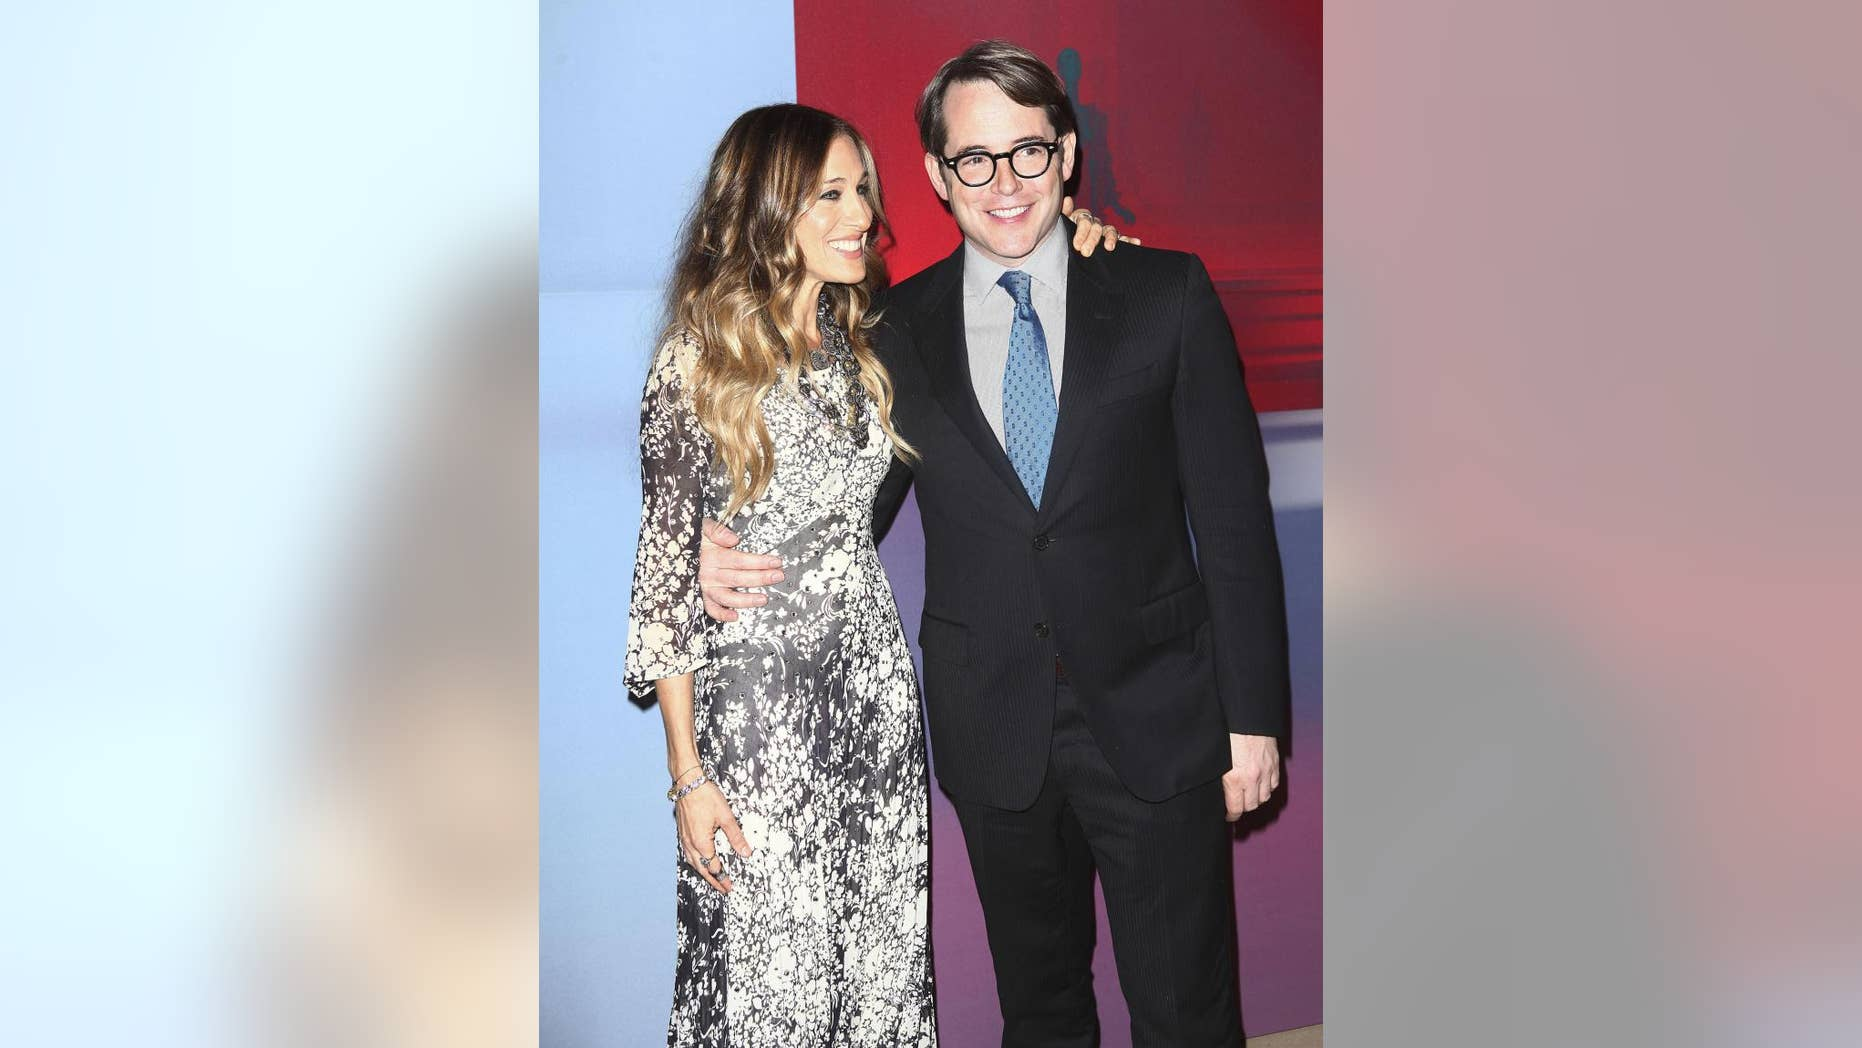 Sarah Jessica Parker talks about what makes her 20-year marriage to Matthew Broderick work.